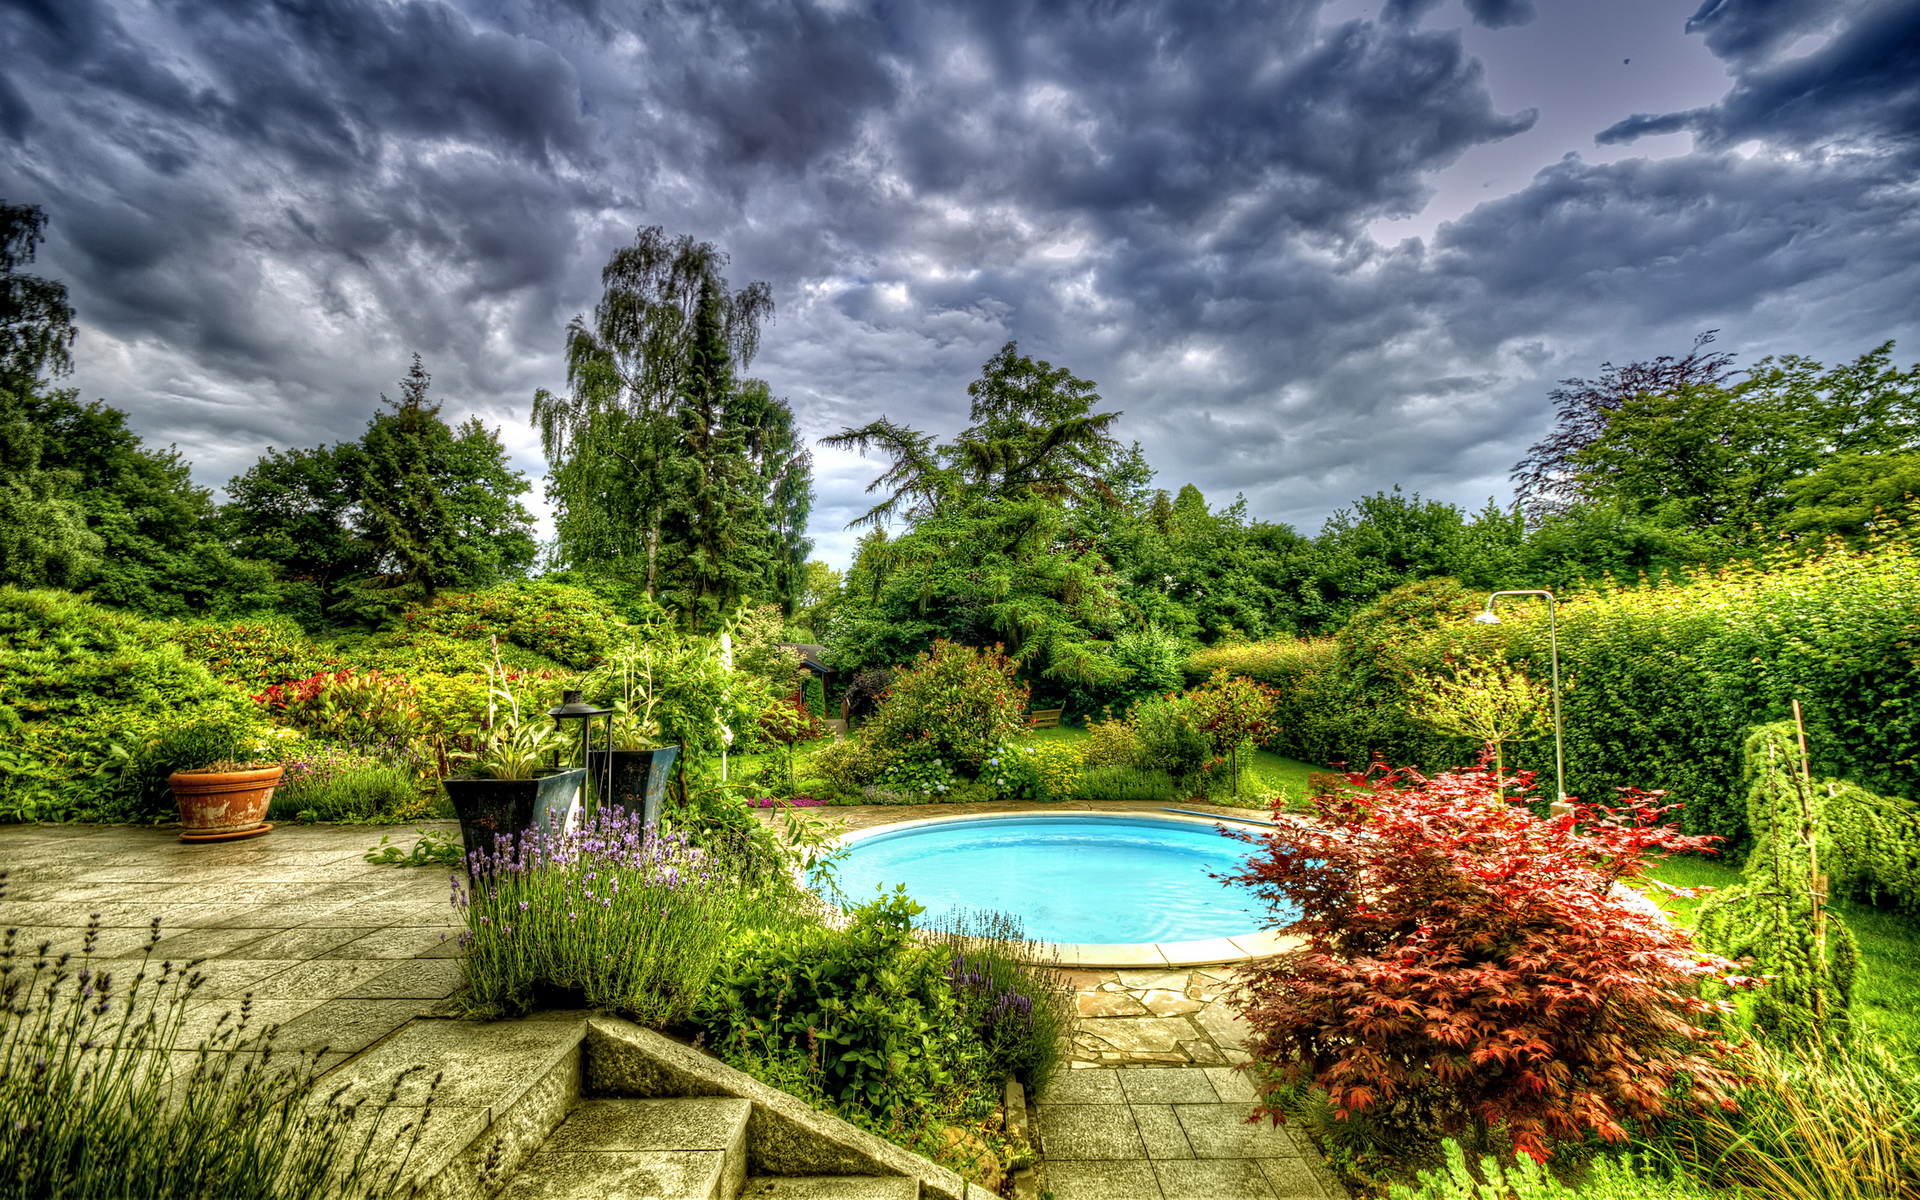 Gardens Sky Pools Clouds HDR Nature Wallpapers and photos